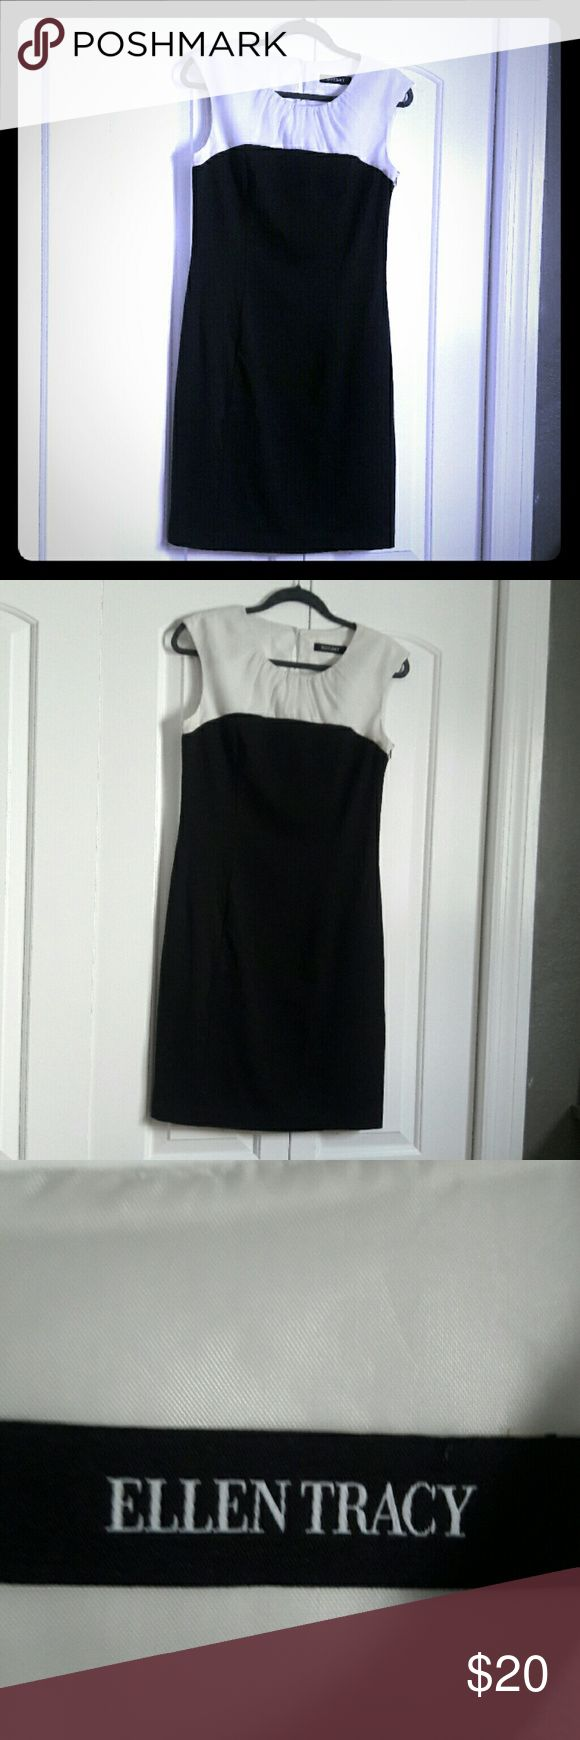 """ELLEN TRACY career dress, sz 10, EUC Great bi-color sheath dress vy ELLEN TRACY, only worn once ir twice. Soft black knit with fully lined crinkled chiffon in ivory on top. Side zip and button in back of neck. Office/ church-appropriate, very flattering on, in great shape. Will fit sz 8 and 10. Measures 18.5 across bust unstretched, 16"""" across waist, 37"""" long. Ships from a smoke-free, expertly dog-supervised home. :-) Top-rated seller, Top10% seller & fast shipper, so buy with confidence…"""